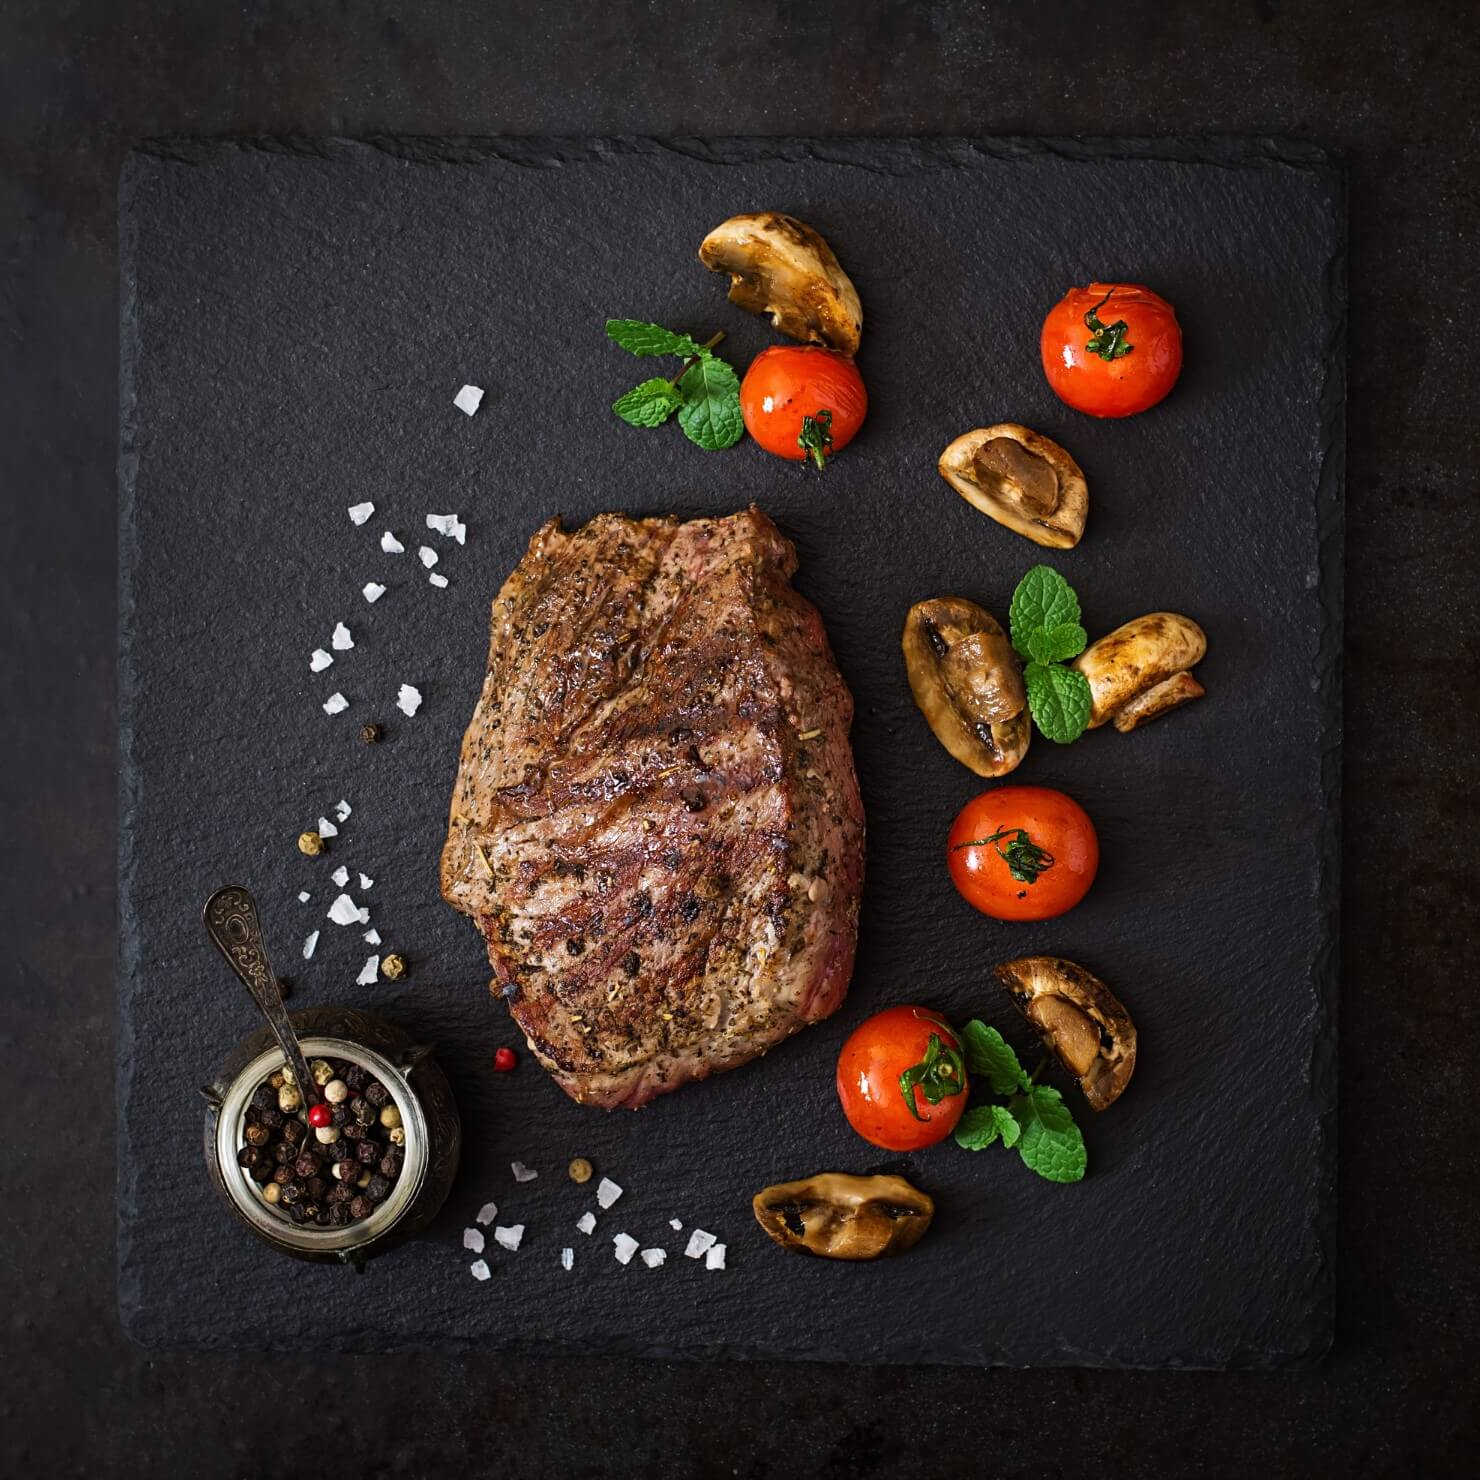 roast-beef-recipe-cooking-time-juicy-steak-medium-rare-beef-with-spices-grilled-vegetables-1